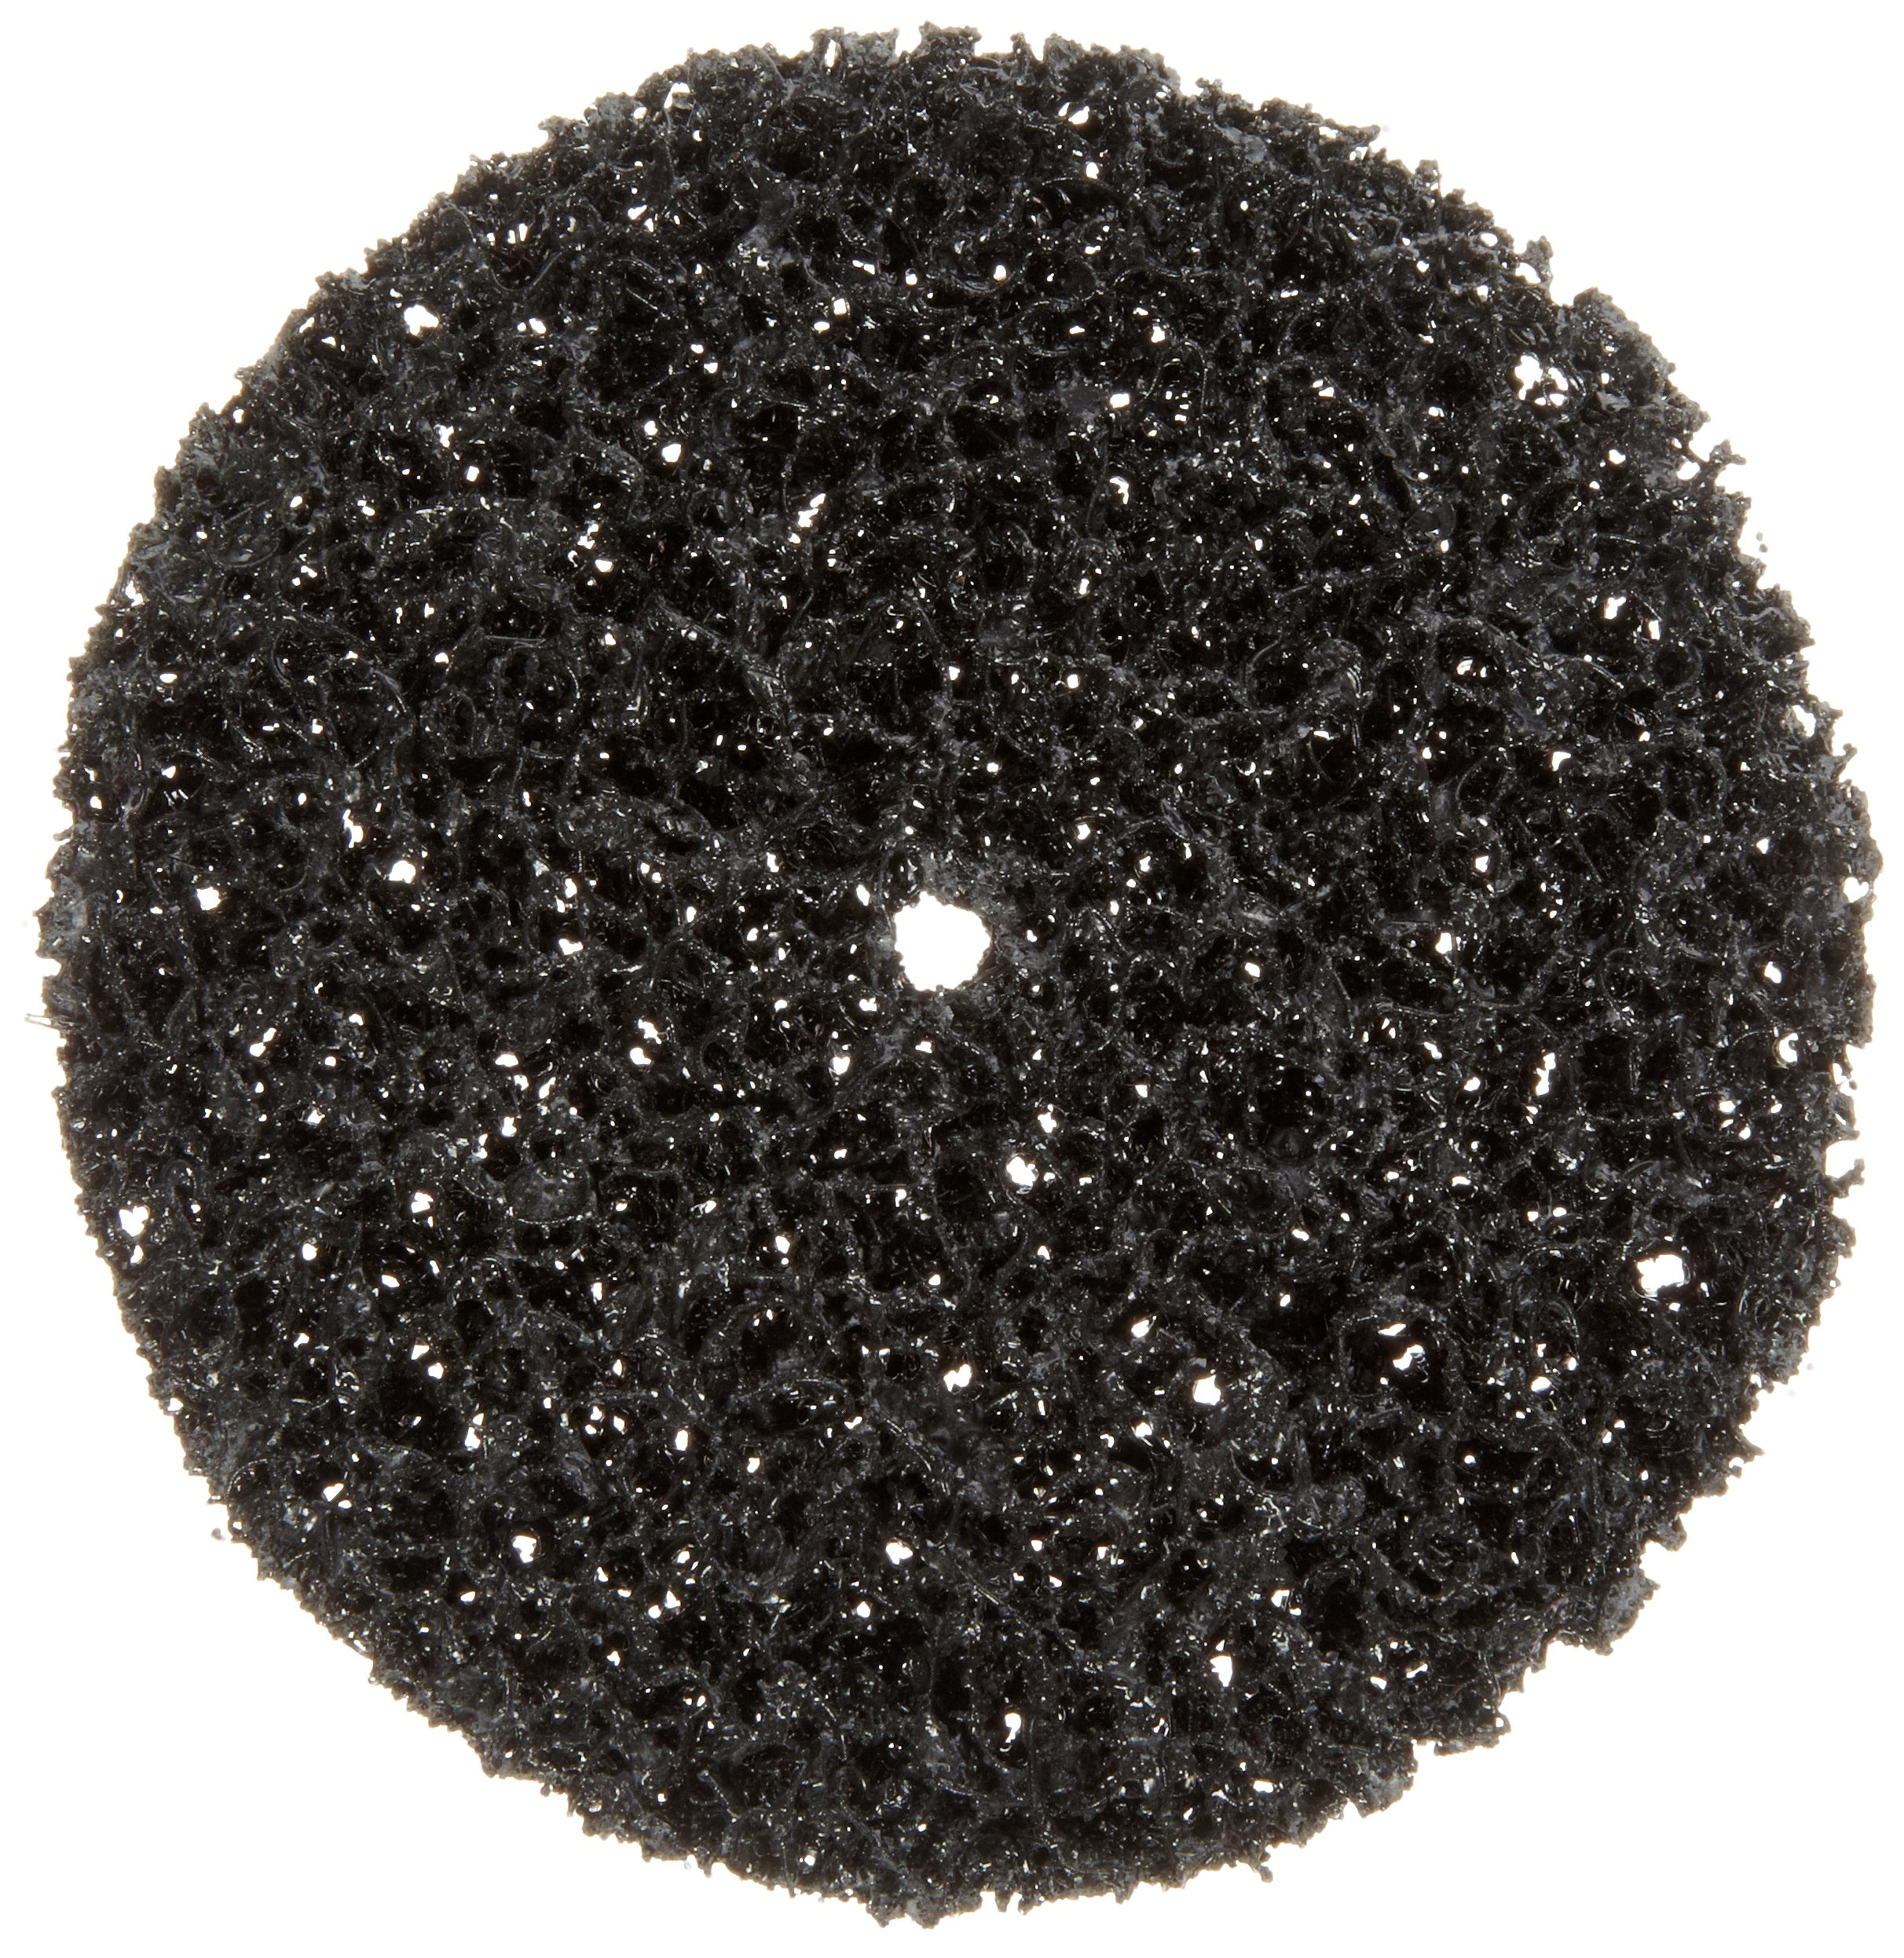 Scotch-Brite(TM) Clean and Strip Disc, Silicon Carbide, 4 Diameter, 1/4 Center Hole Diameter, Extra Coarse Grit  (Pack of 25)